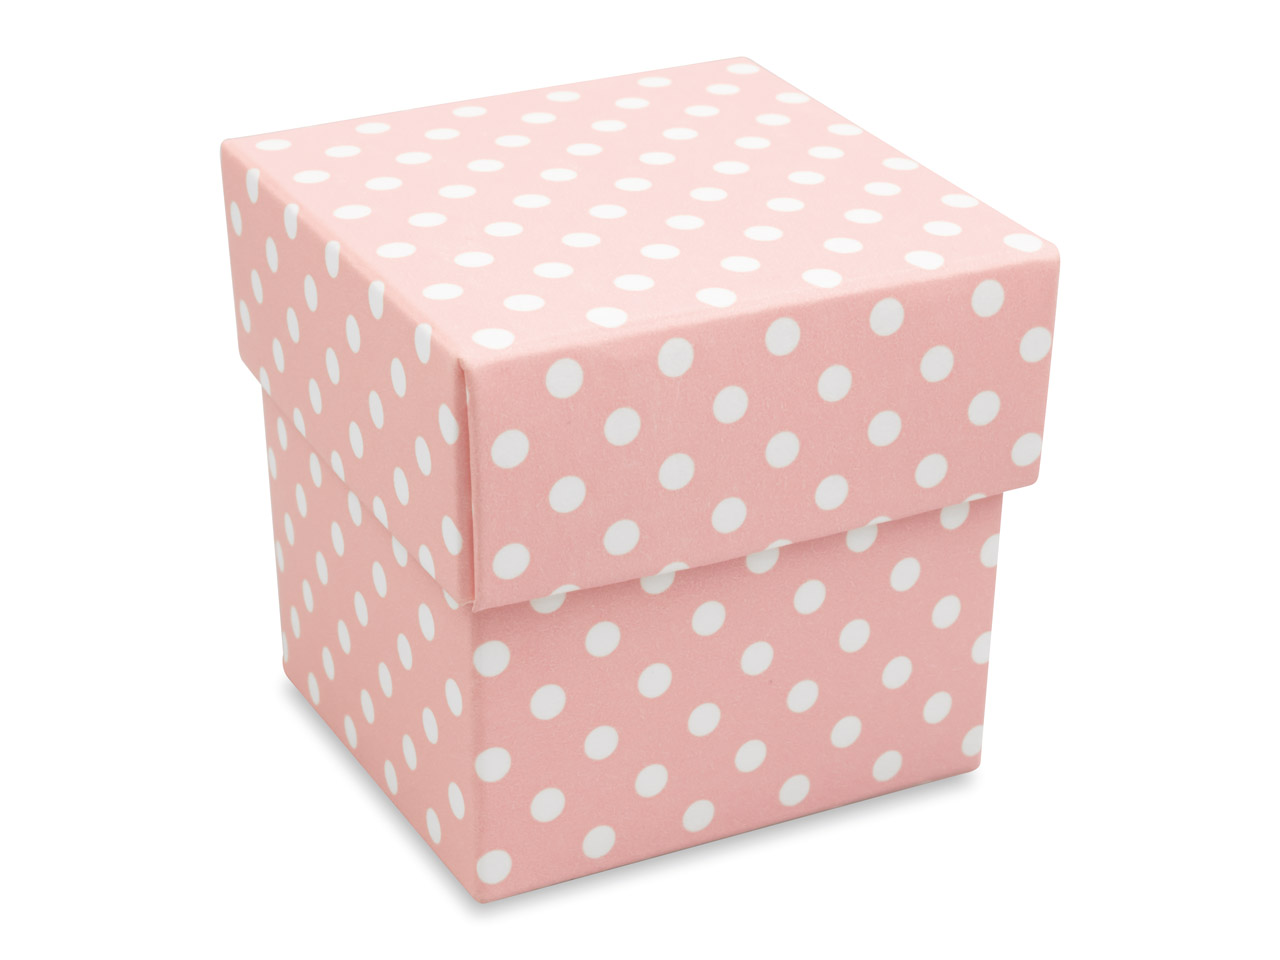 Flat Pack Square Box Pink Polka Dot Pack of 10